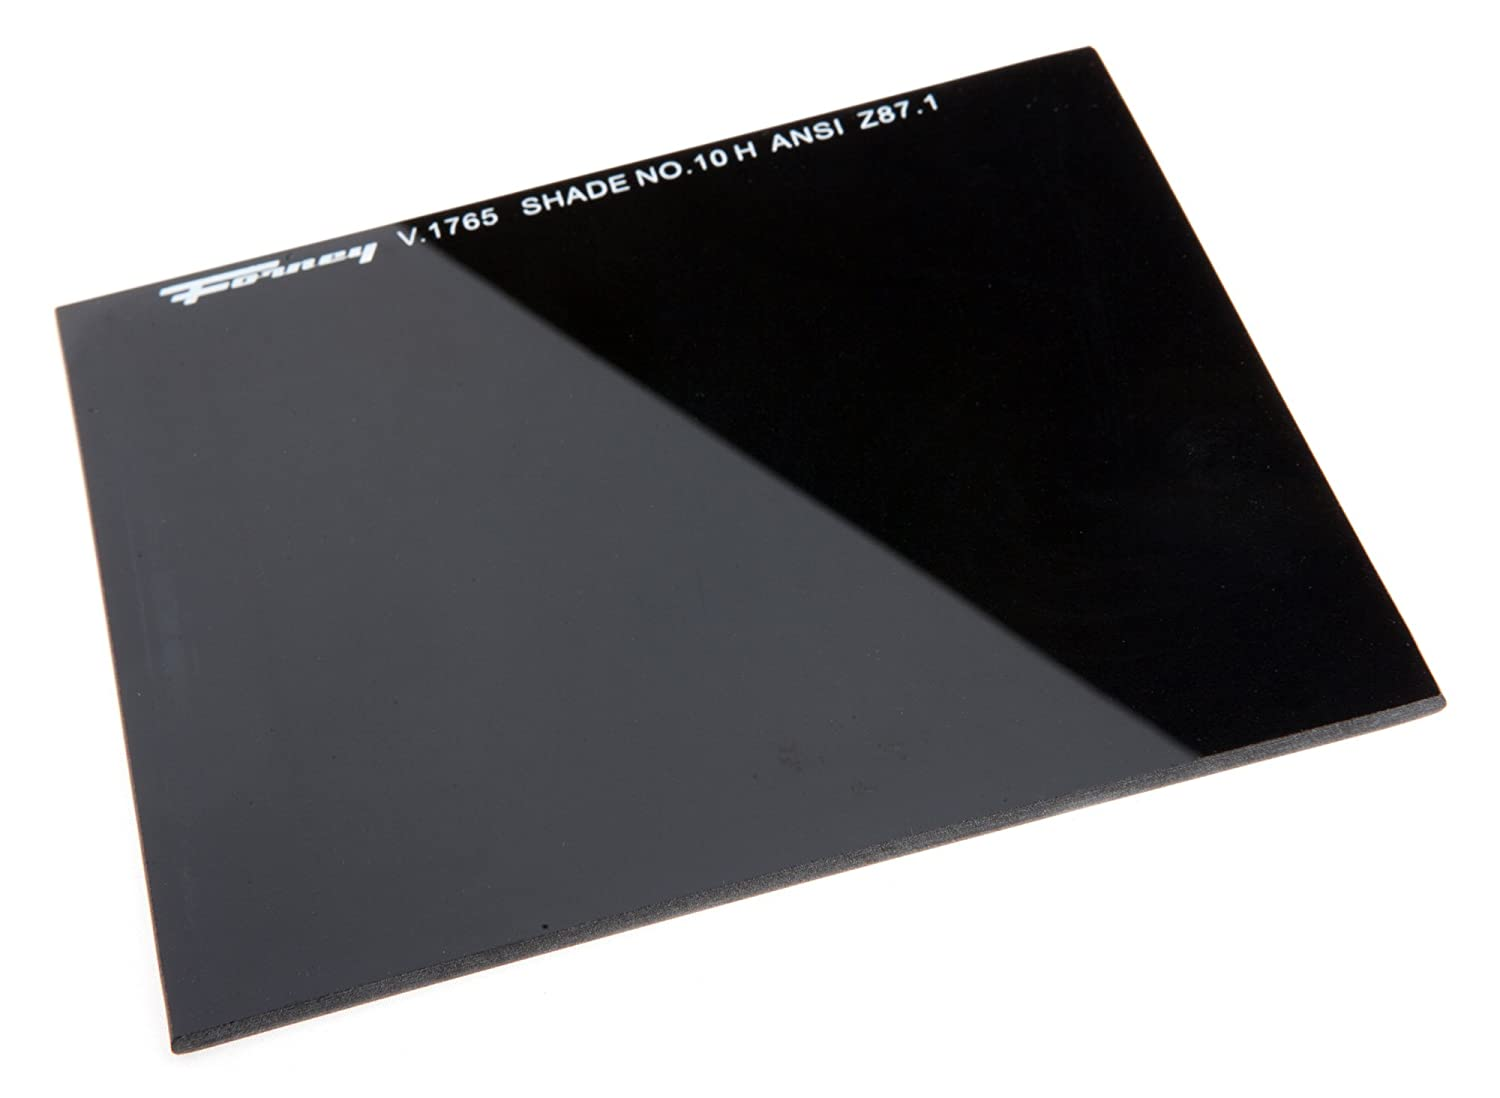 Forney 57052 Lens Replacement Hardened Glass 4 1 2 Inch by 5 1 4 Inch Shade 10